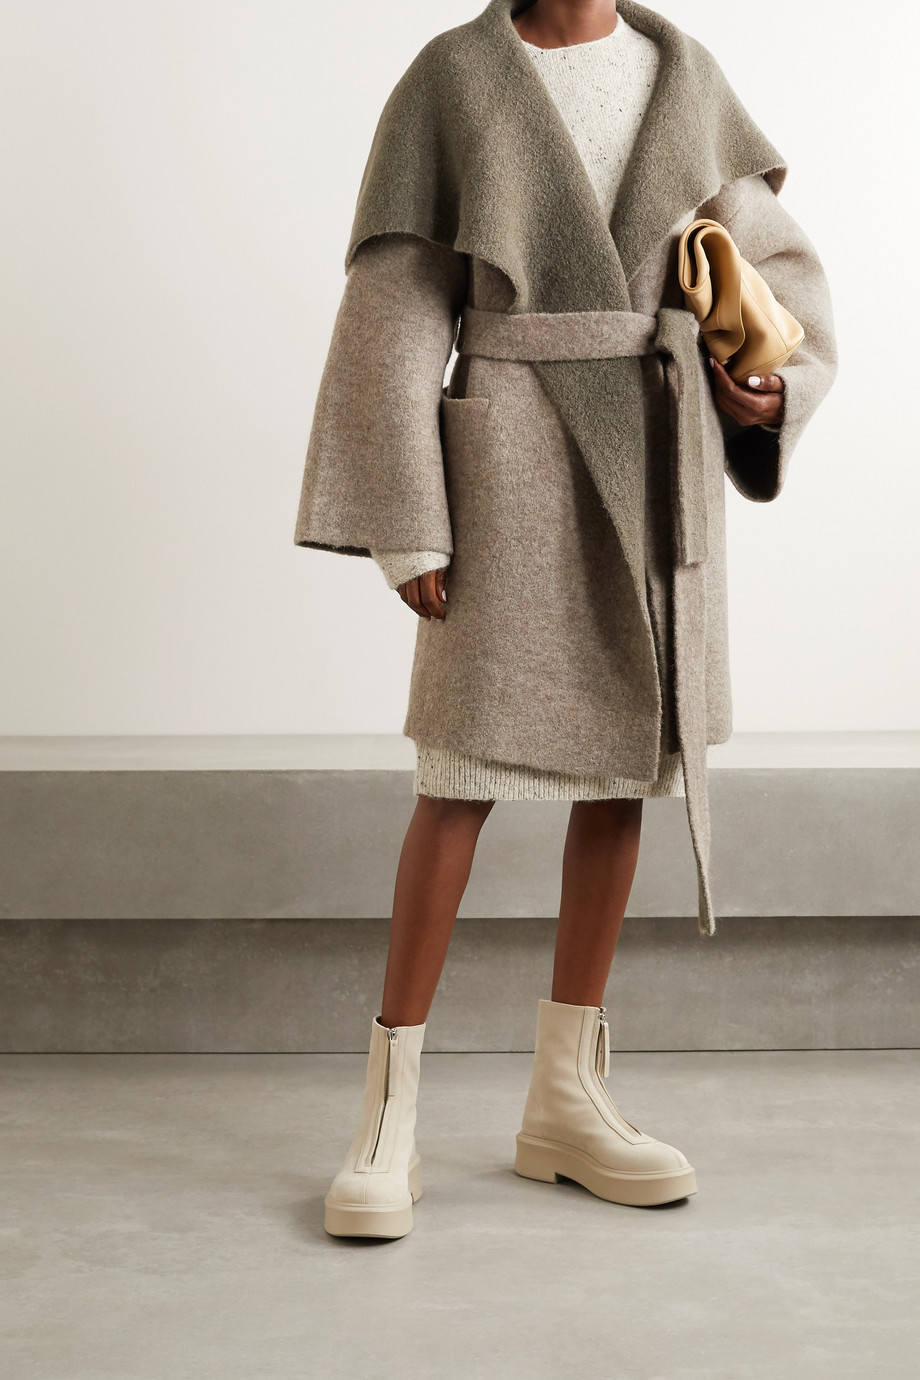 LAUREN MANOOGIAN + NET SUSTAIN belted knitted coat